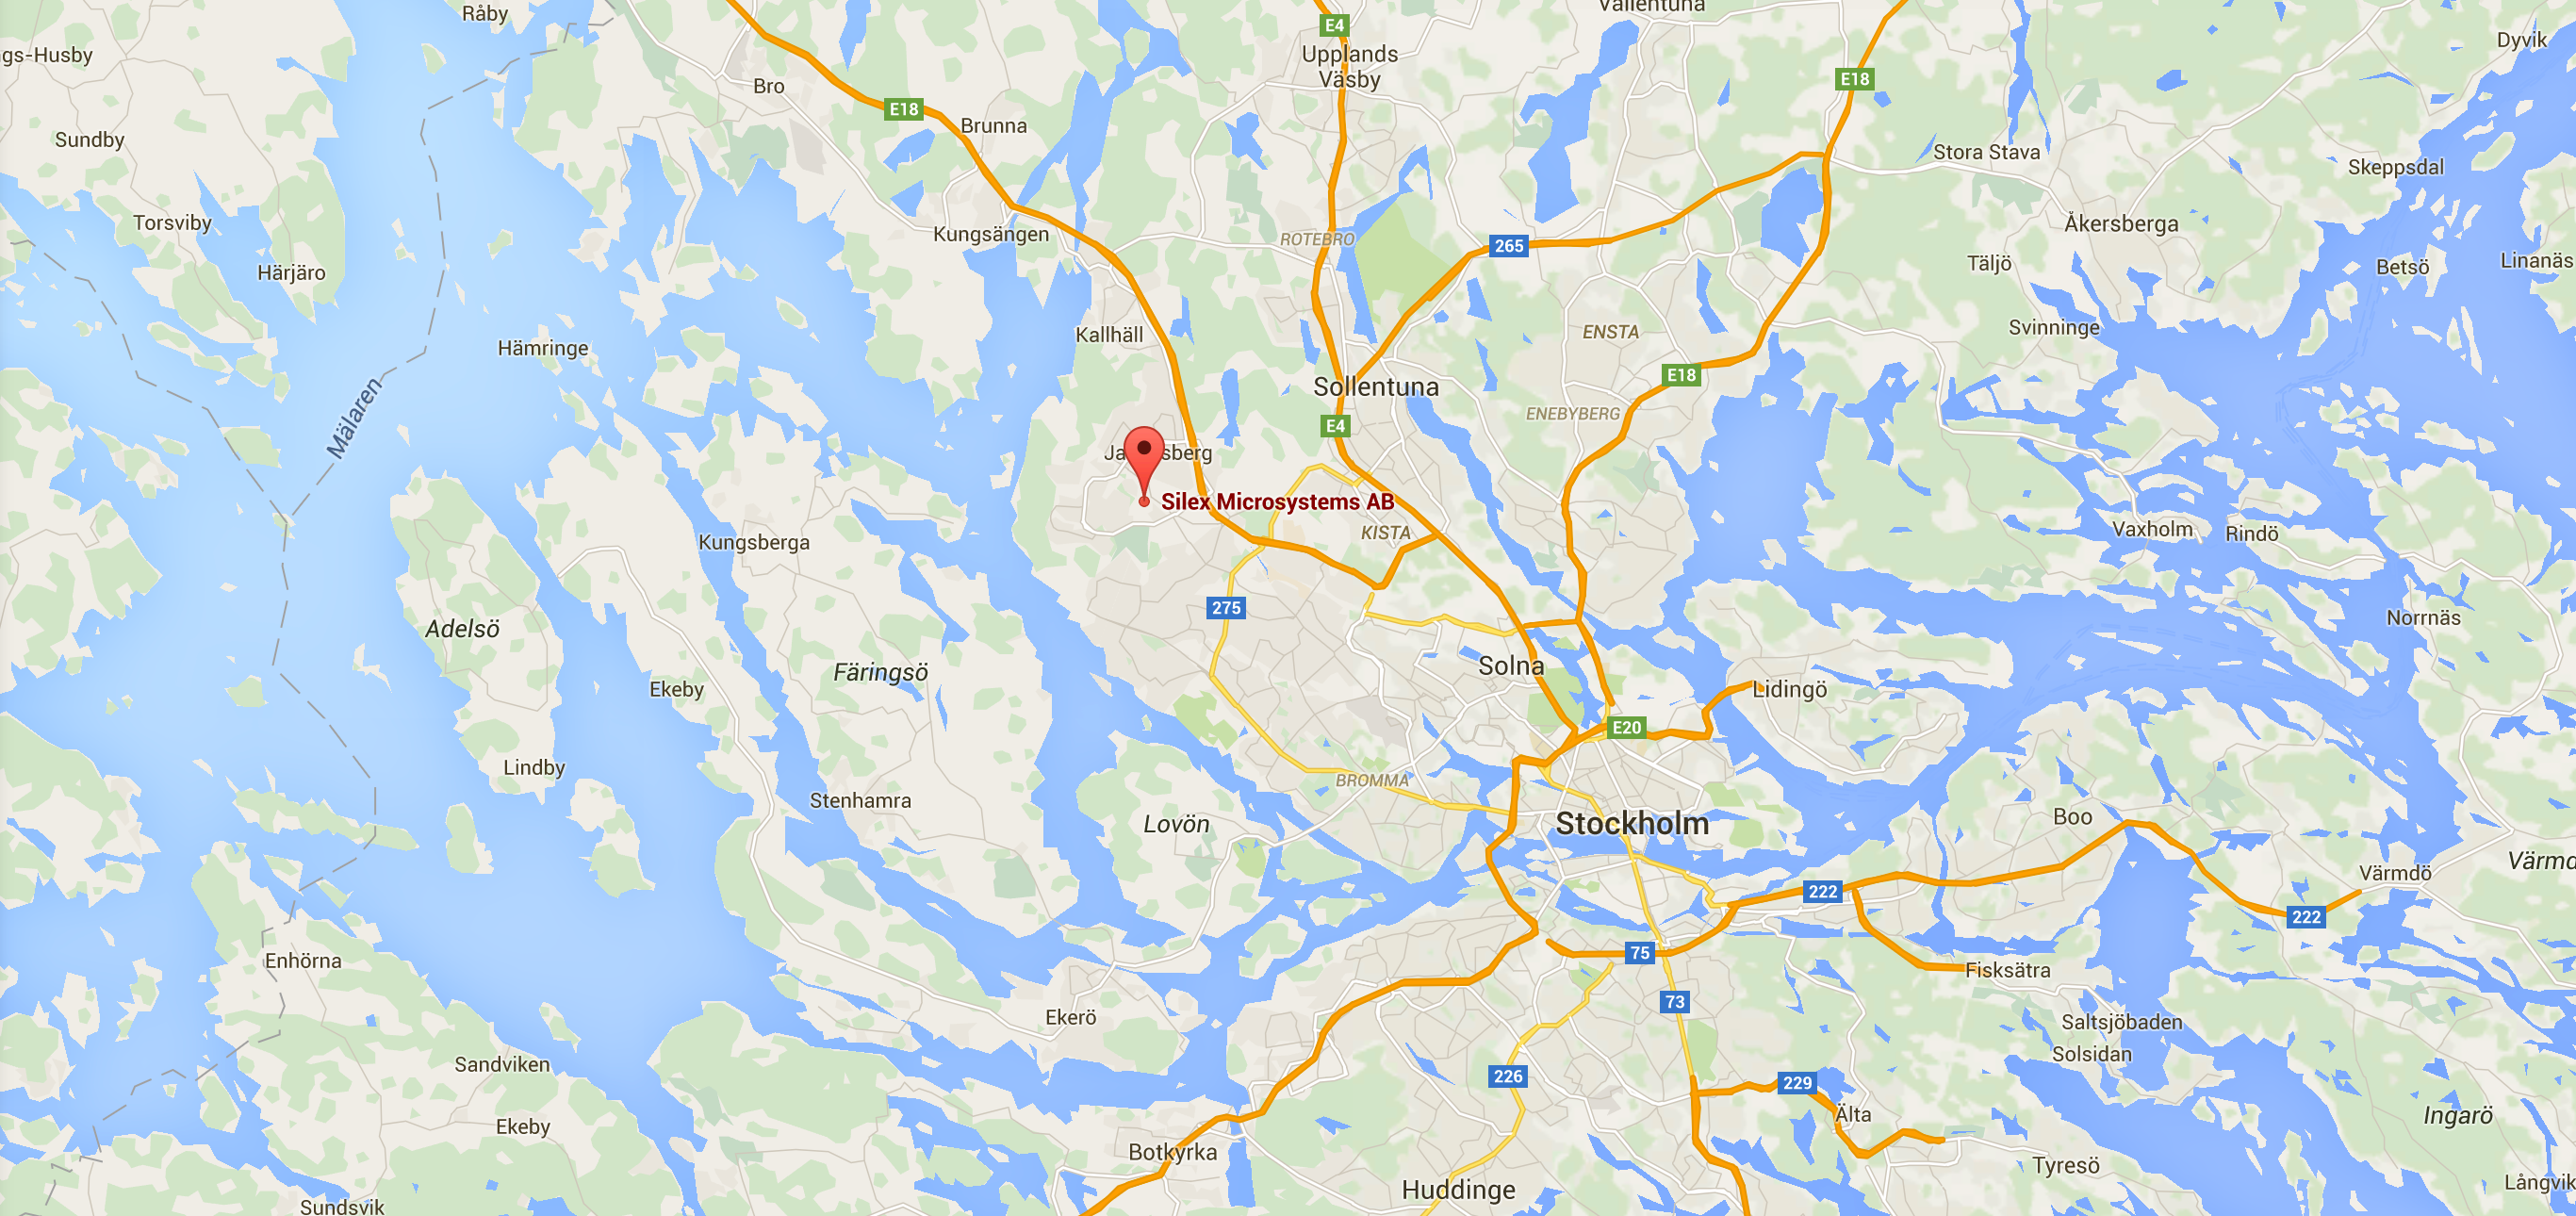 Map on Silex Microsystems AB in Sweden